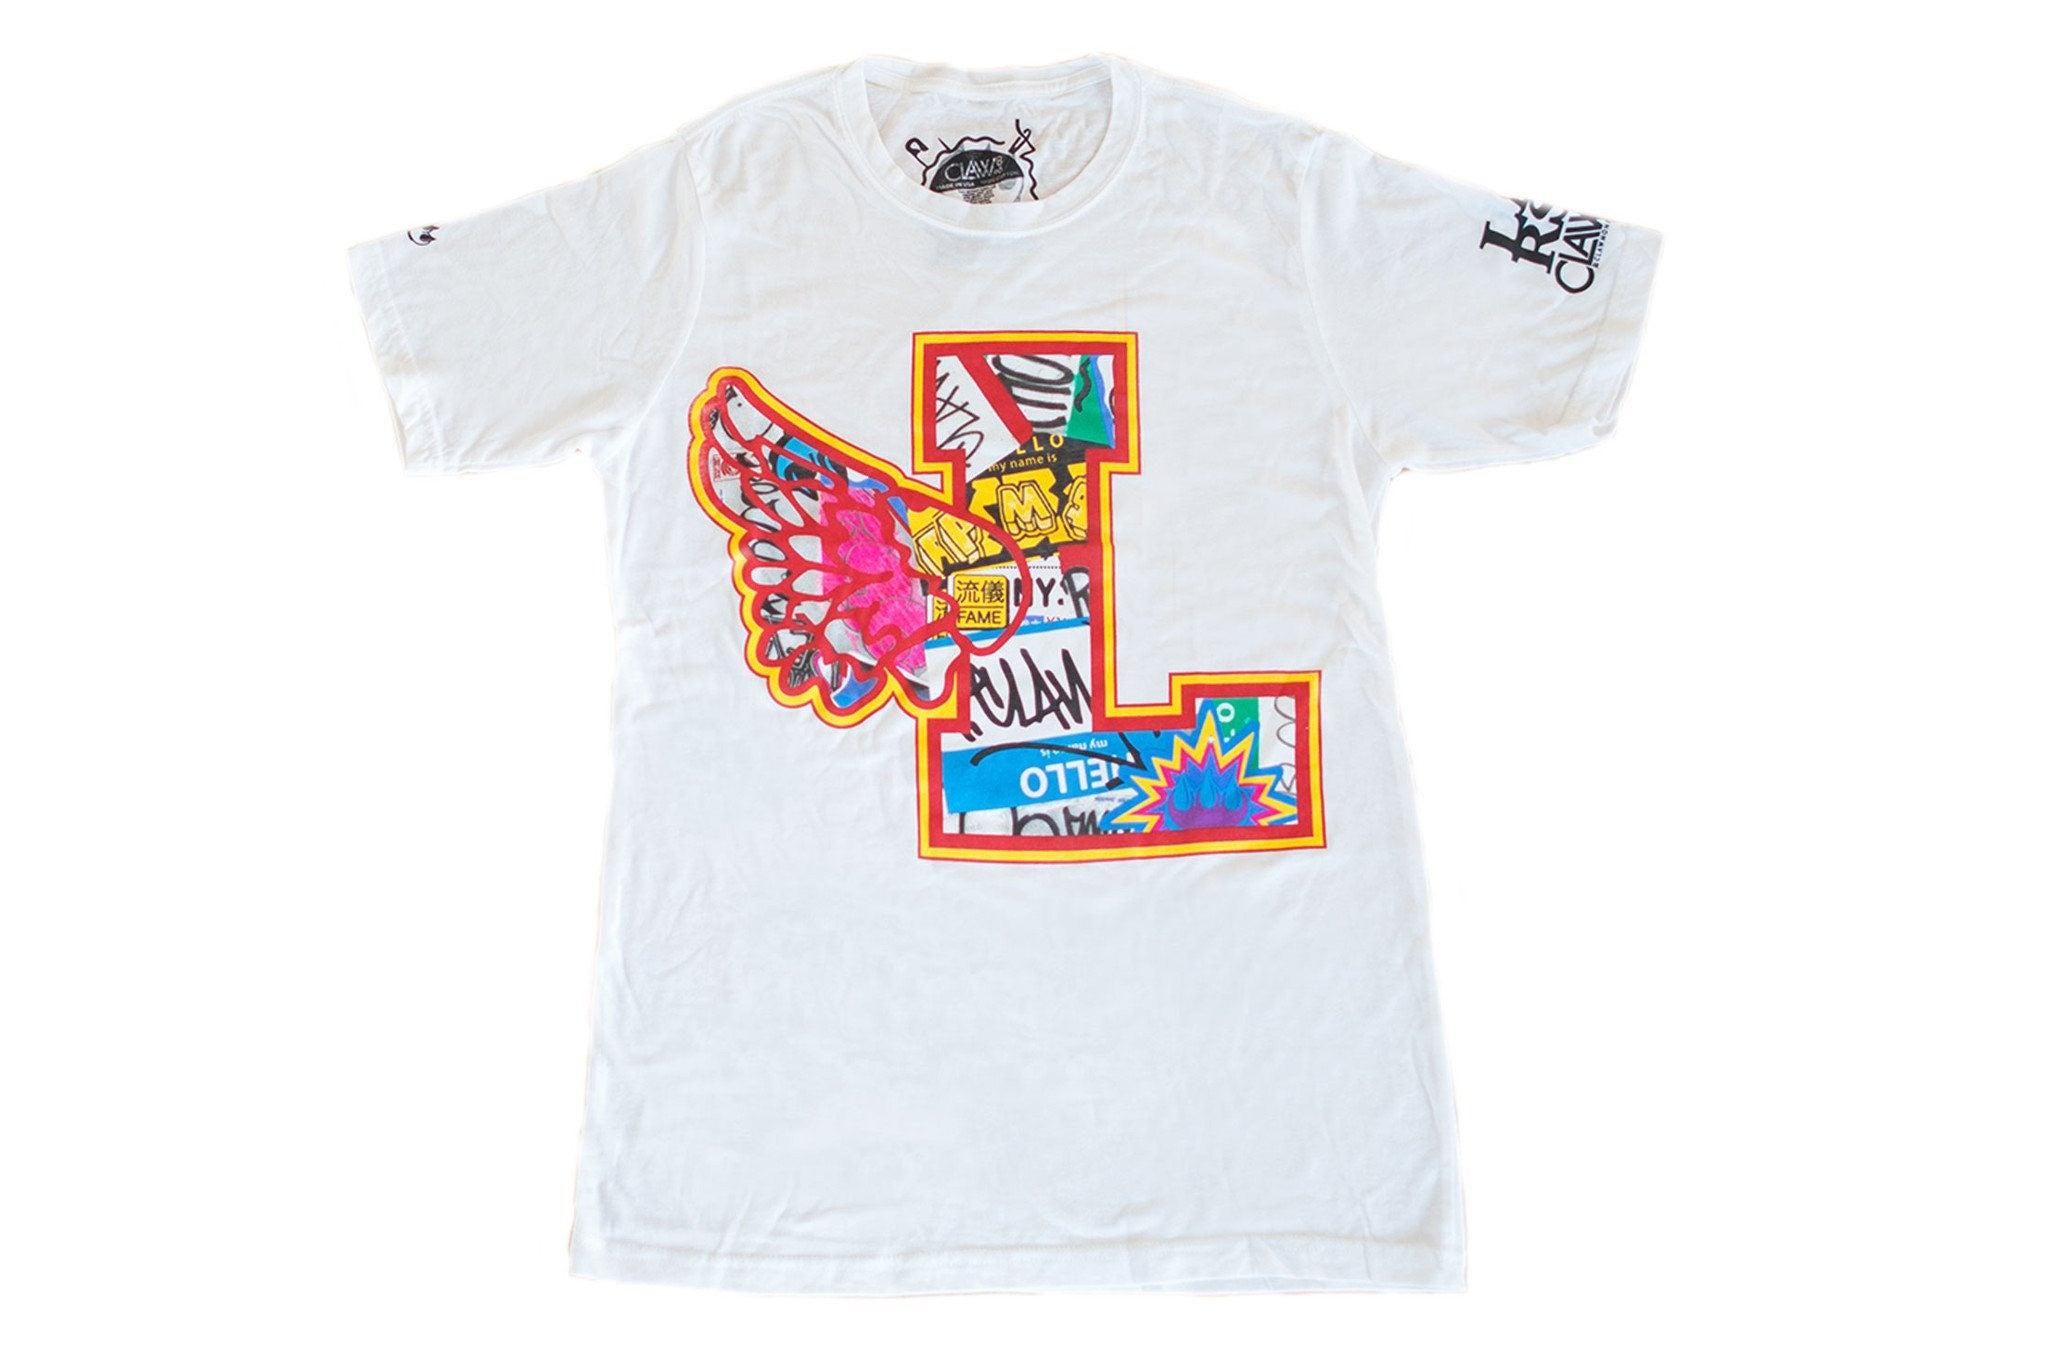 Leaders X Claw Money L Wing Tee